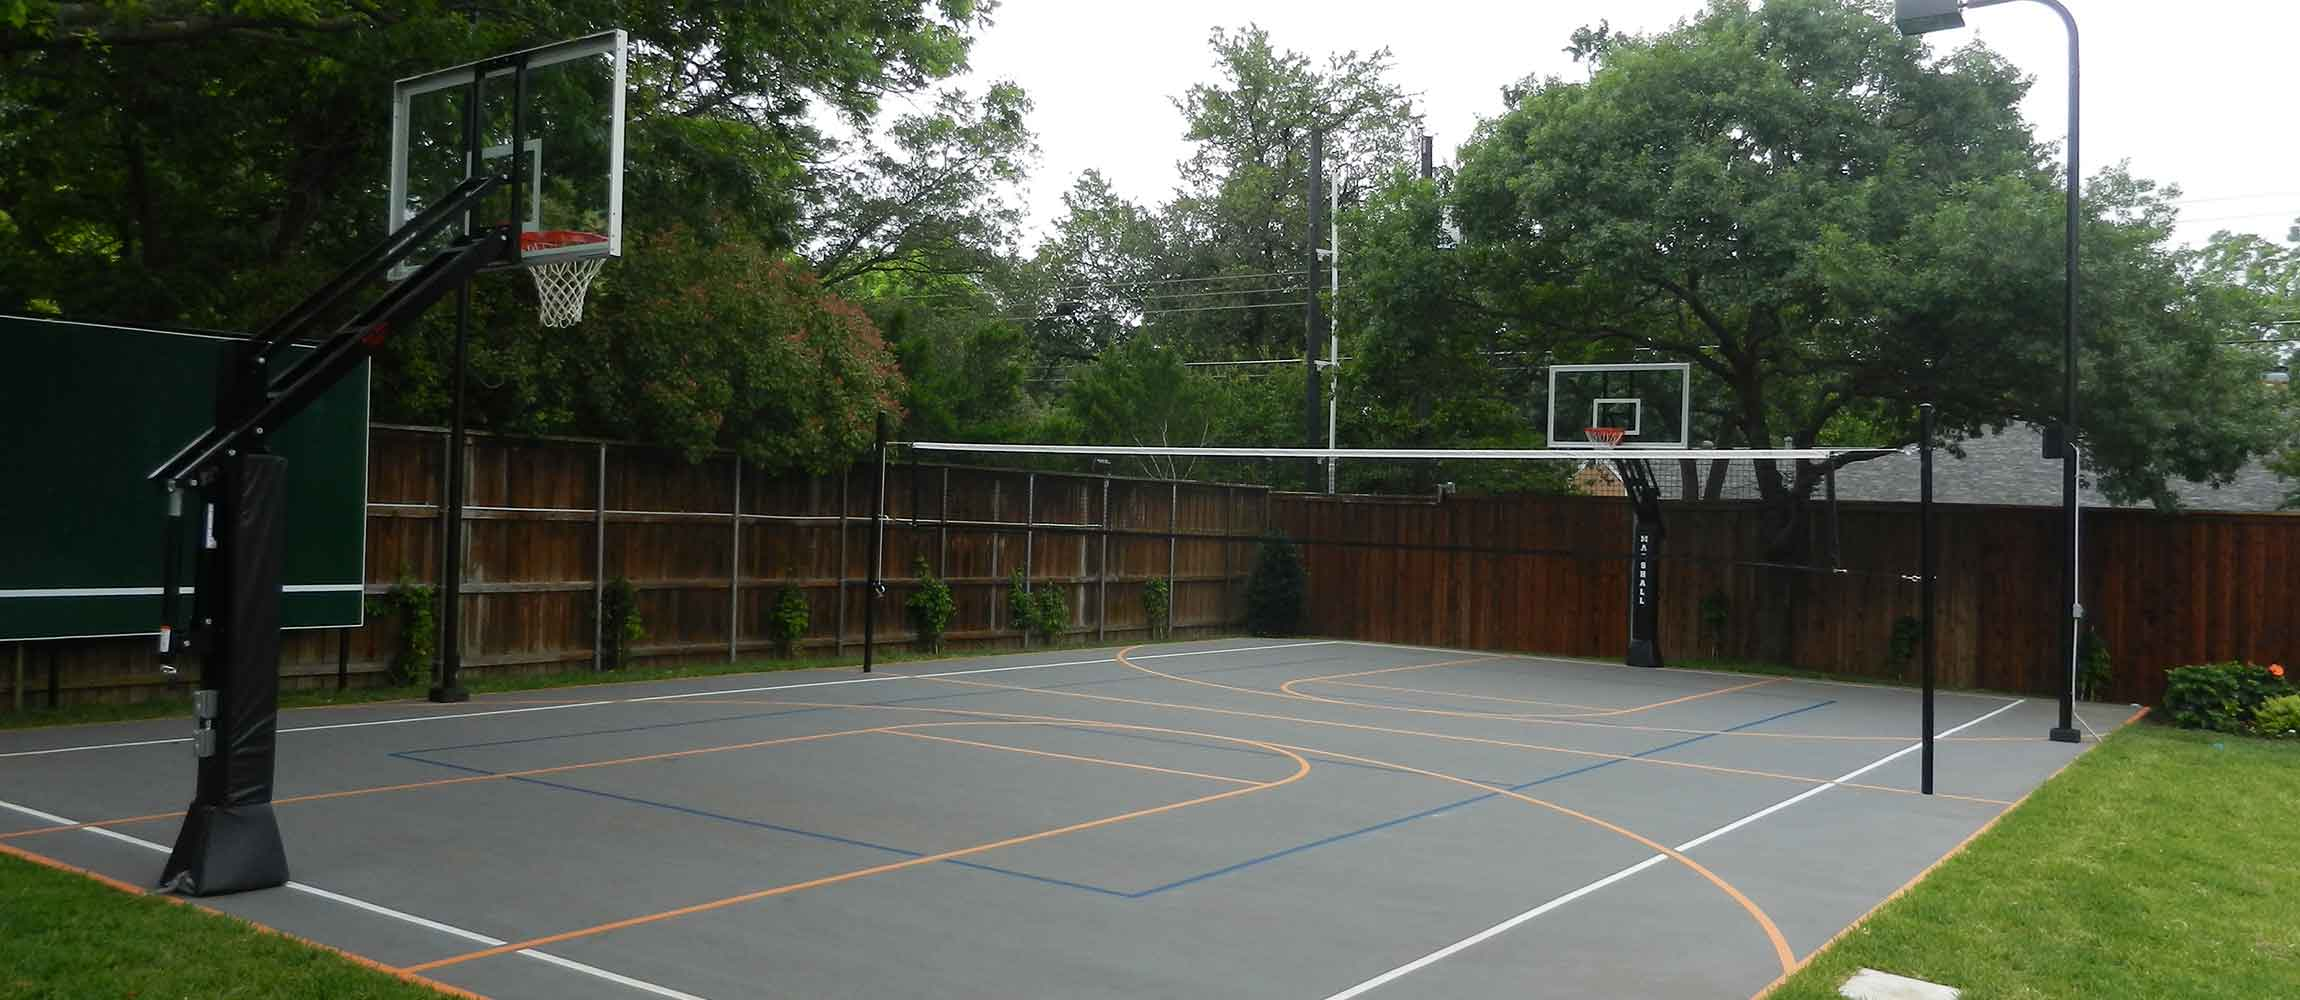 Master Systems Courts Basketball And Multi Purpose Court Slide